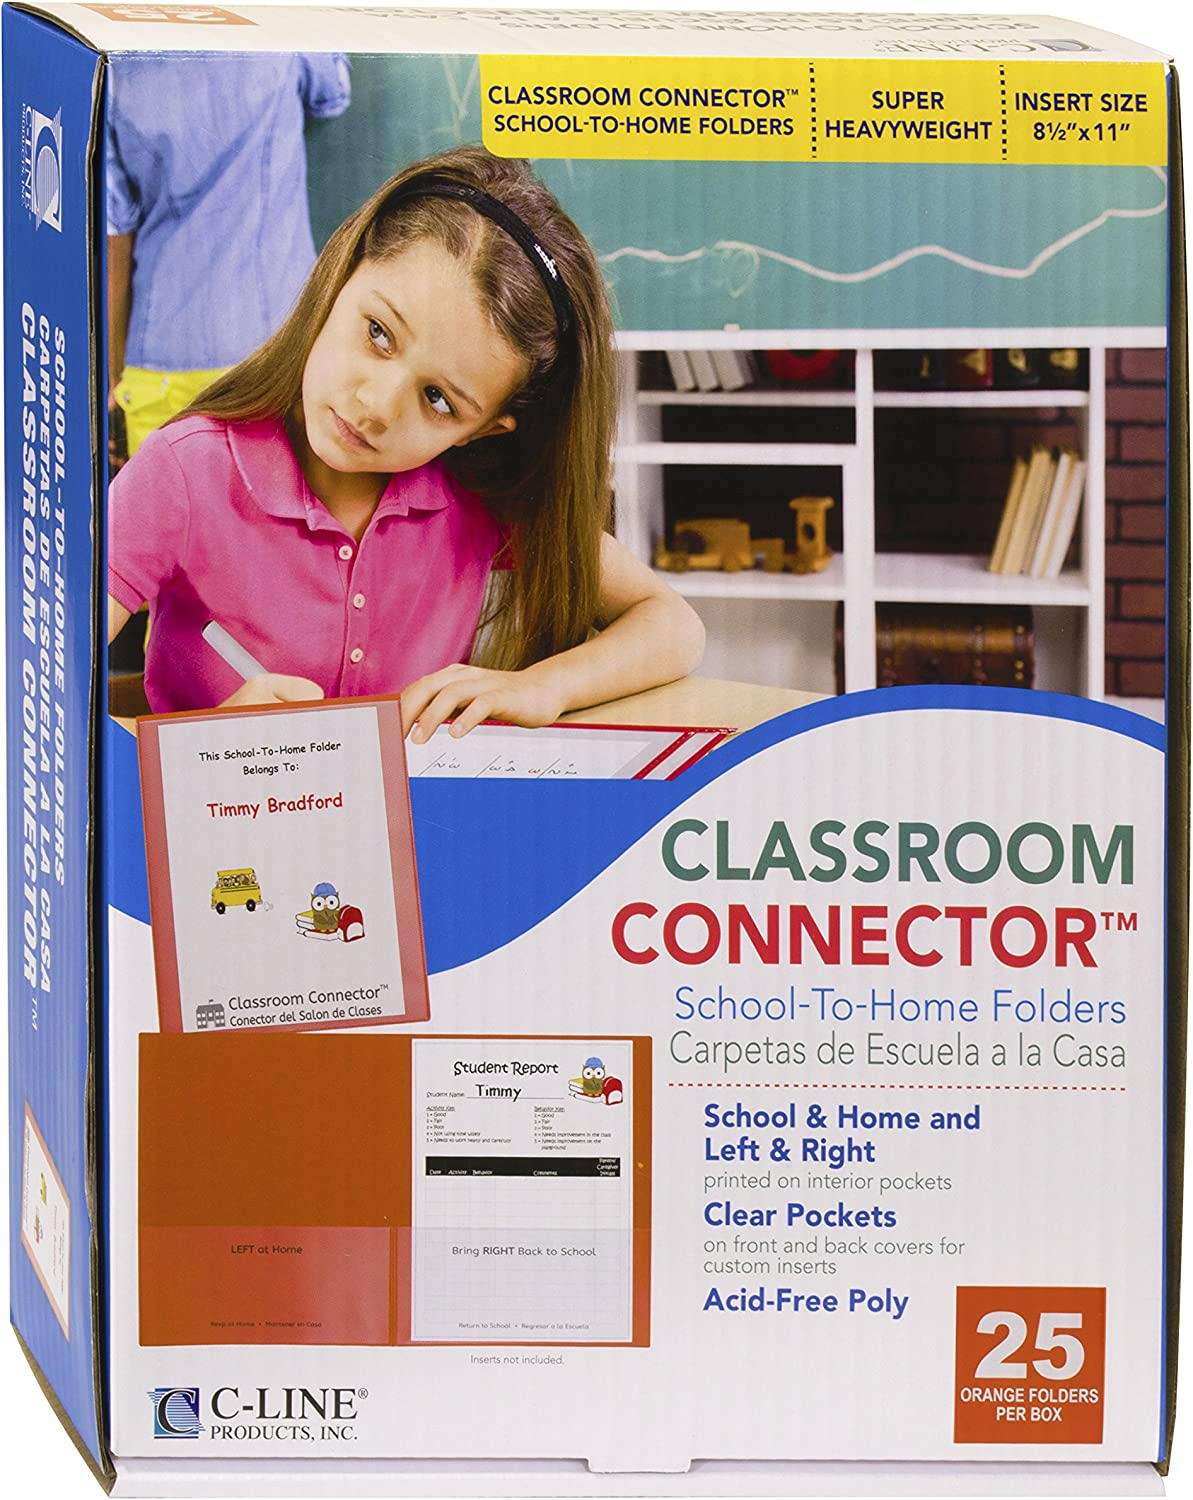 C-Line Classroom Connector School-to-Home Folders, Orange, 25 per Box (32002)